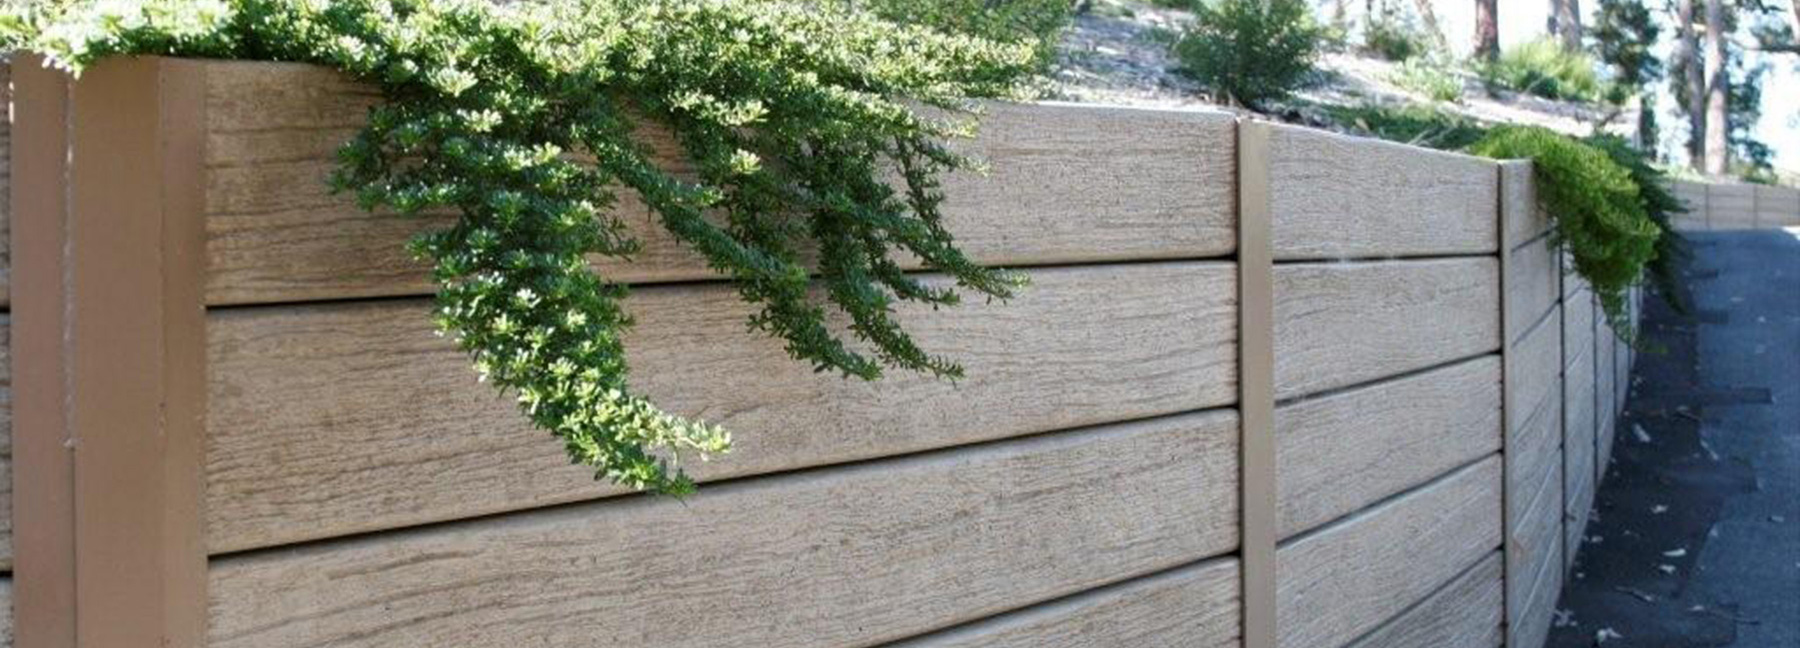 Concrete Sleepers Retaining Wall Products Garden Edging